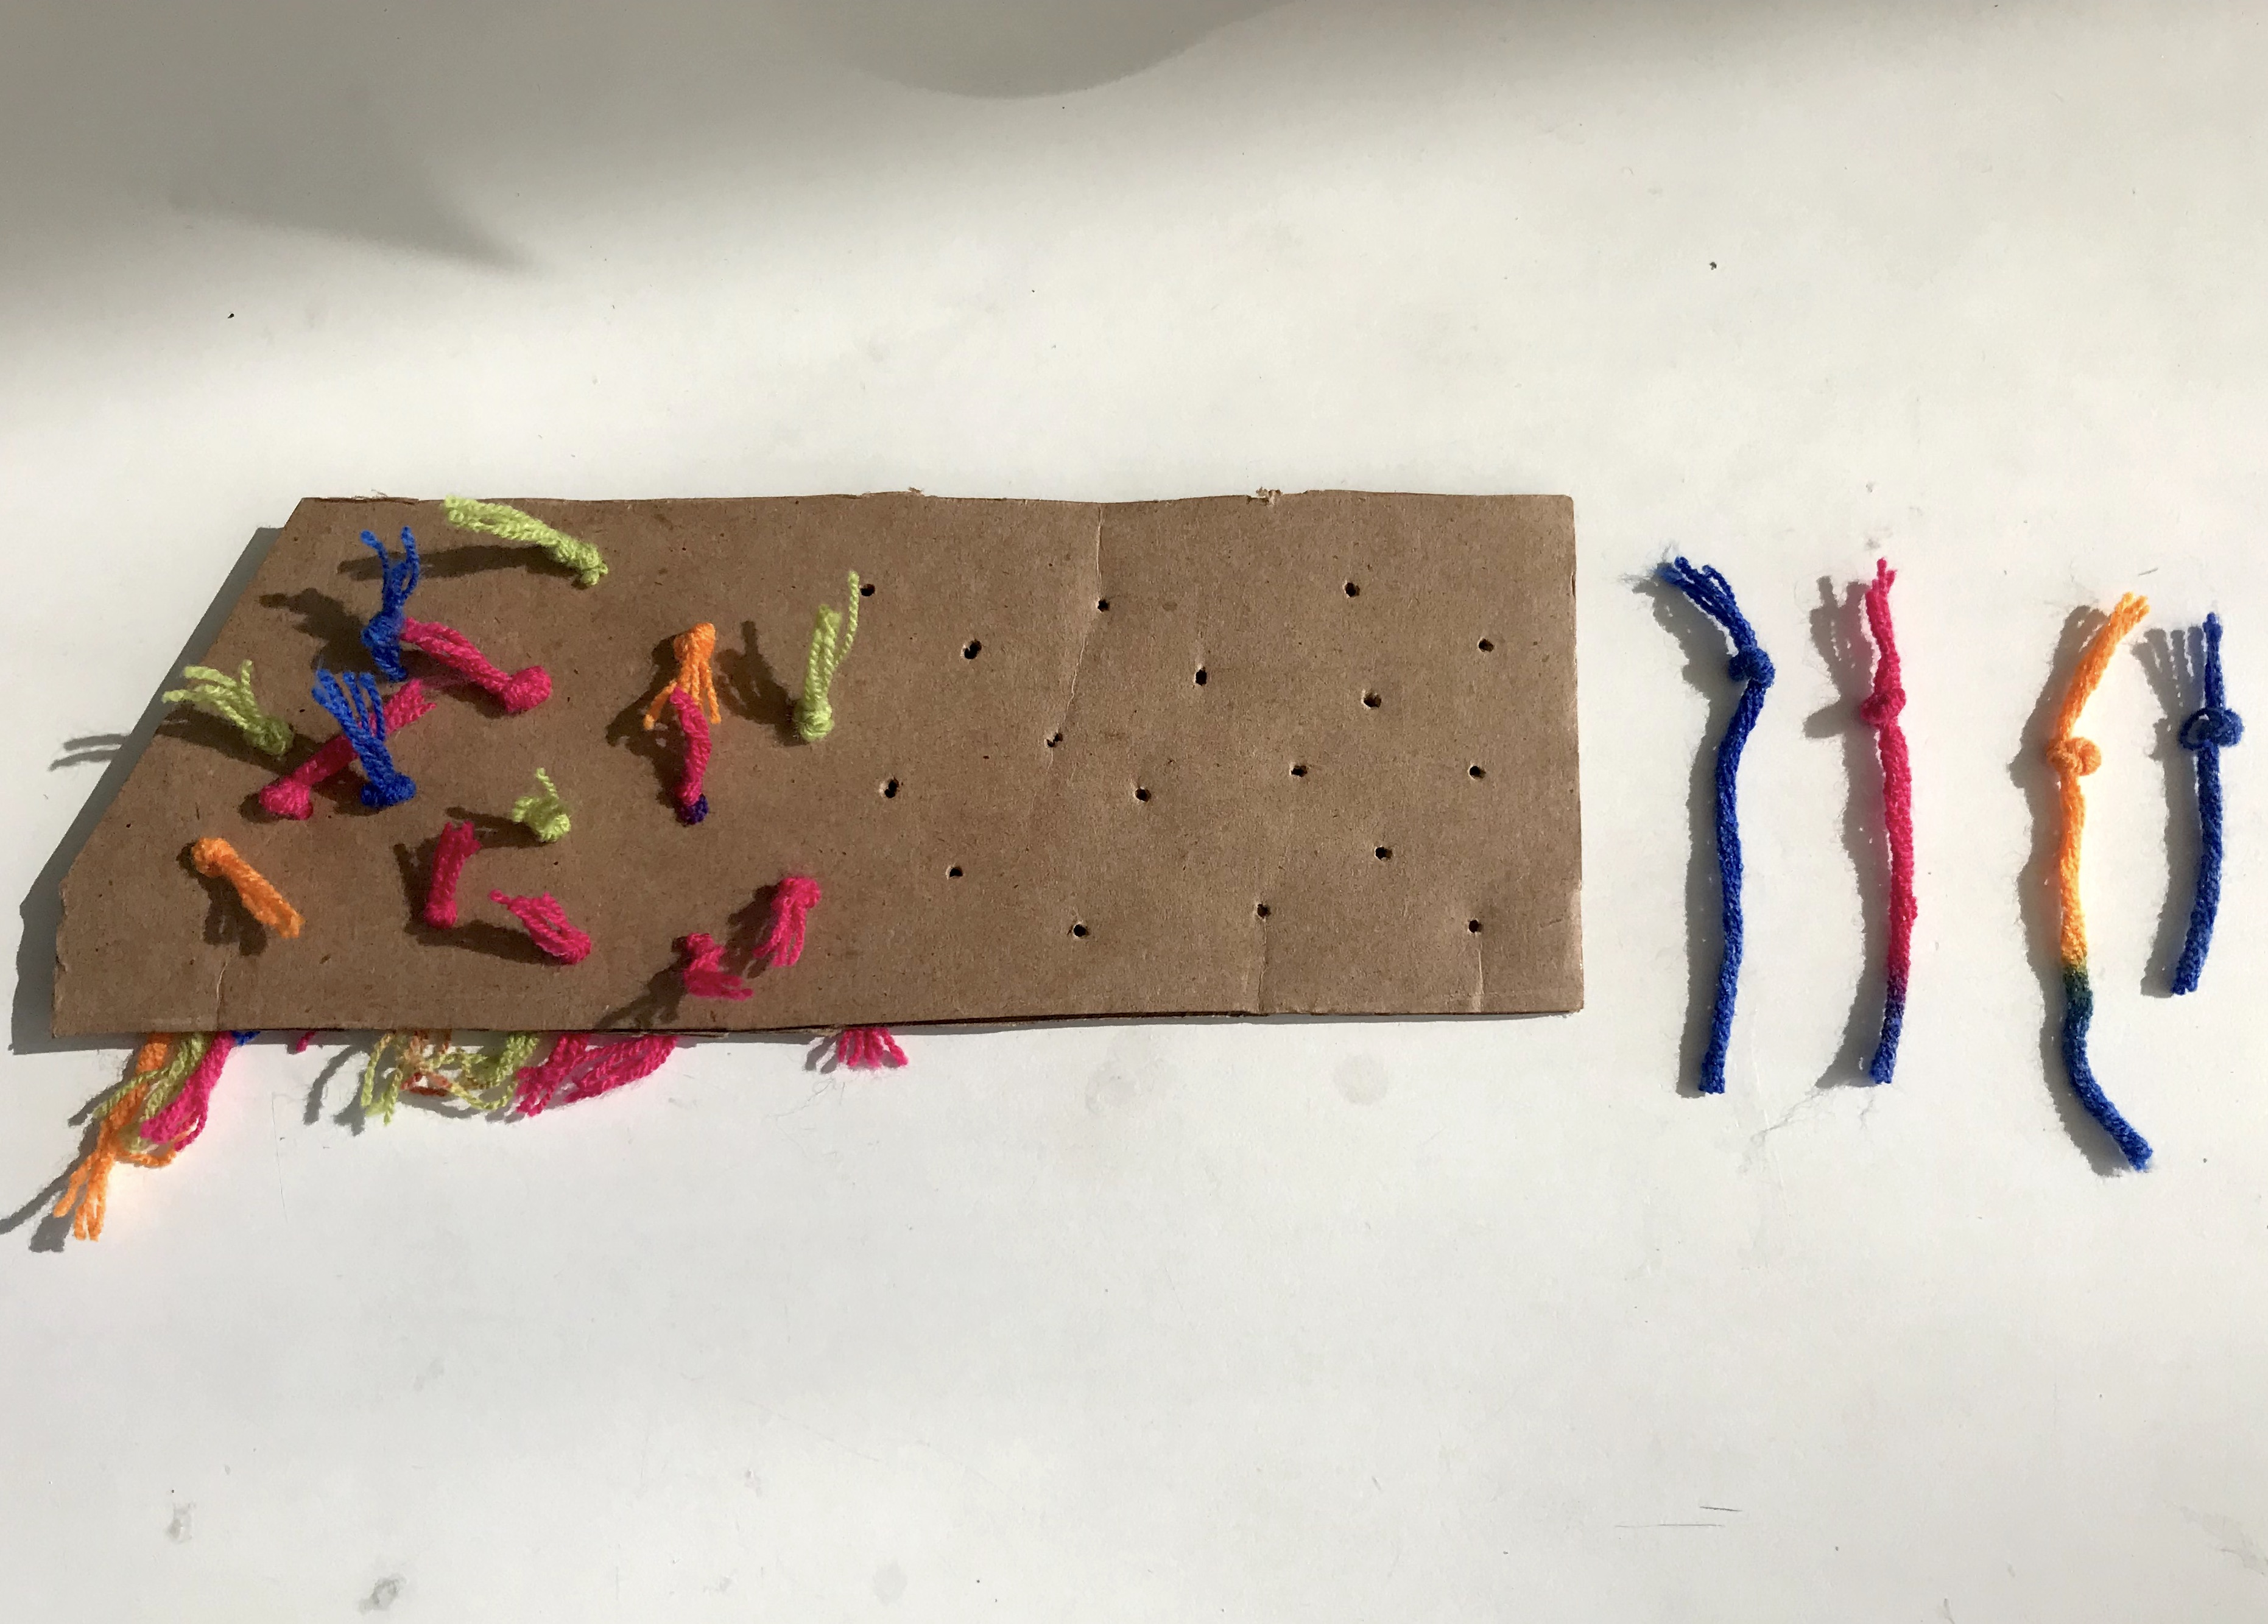 circuit_playground_projects_IMG_4655.jpg